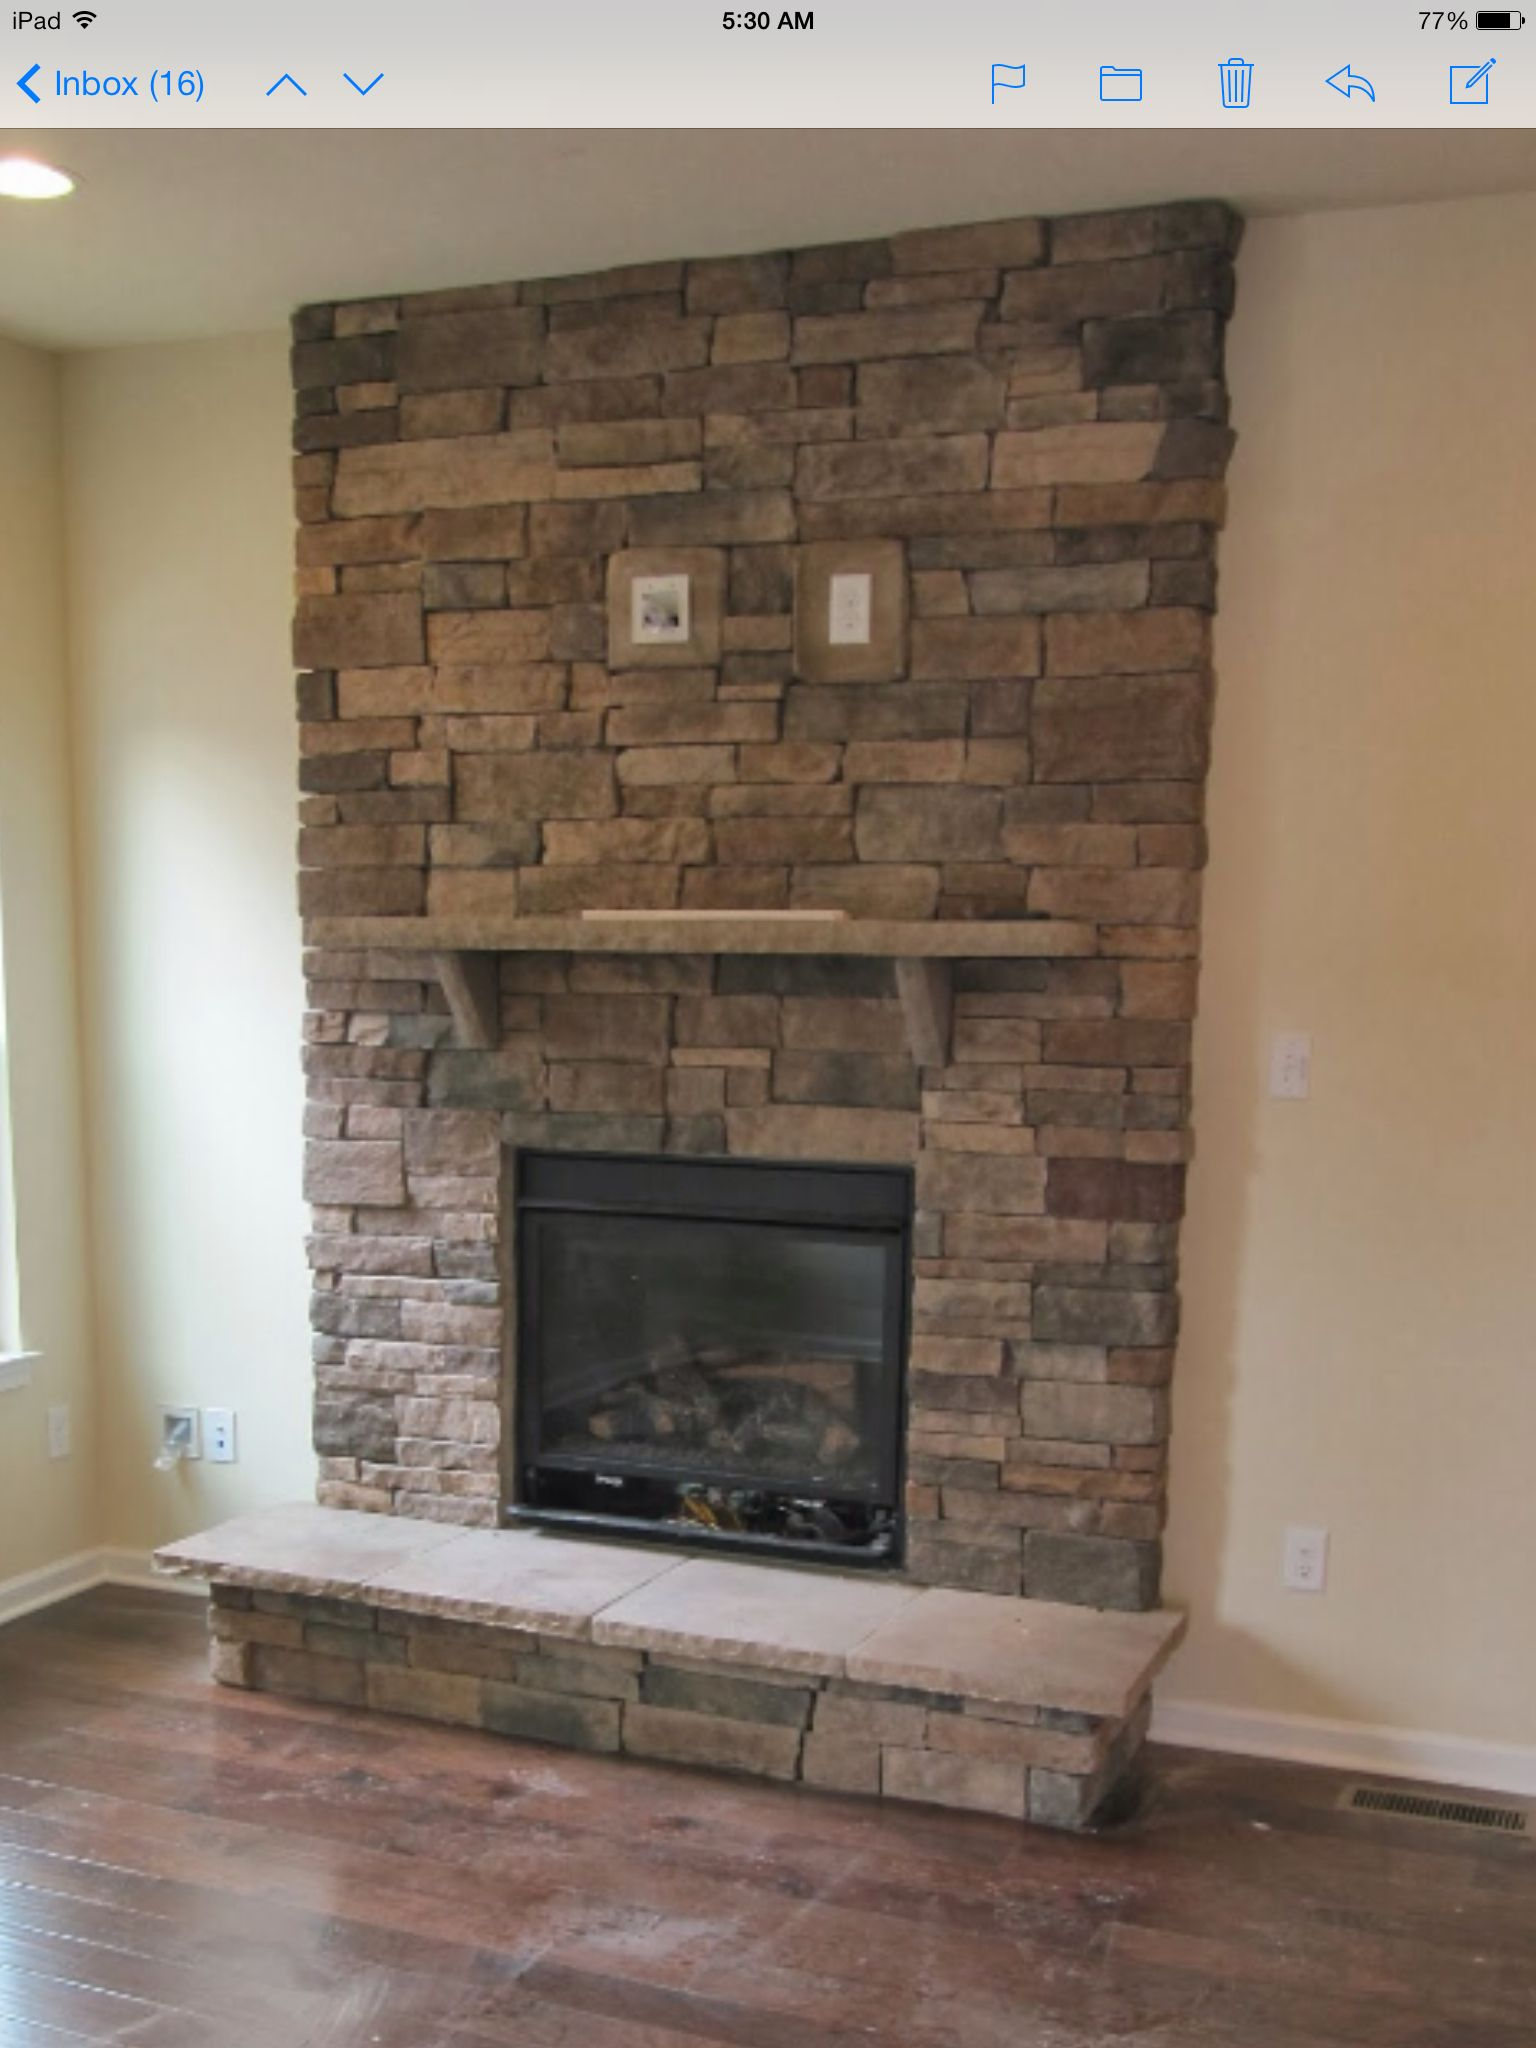 Fireplace Tv Mount Stacked Stone Fireplace With Tv Mount New House Final Selections